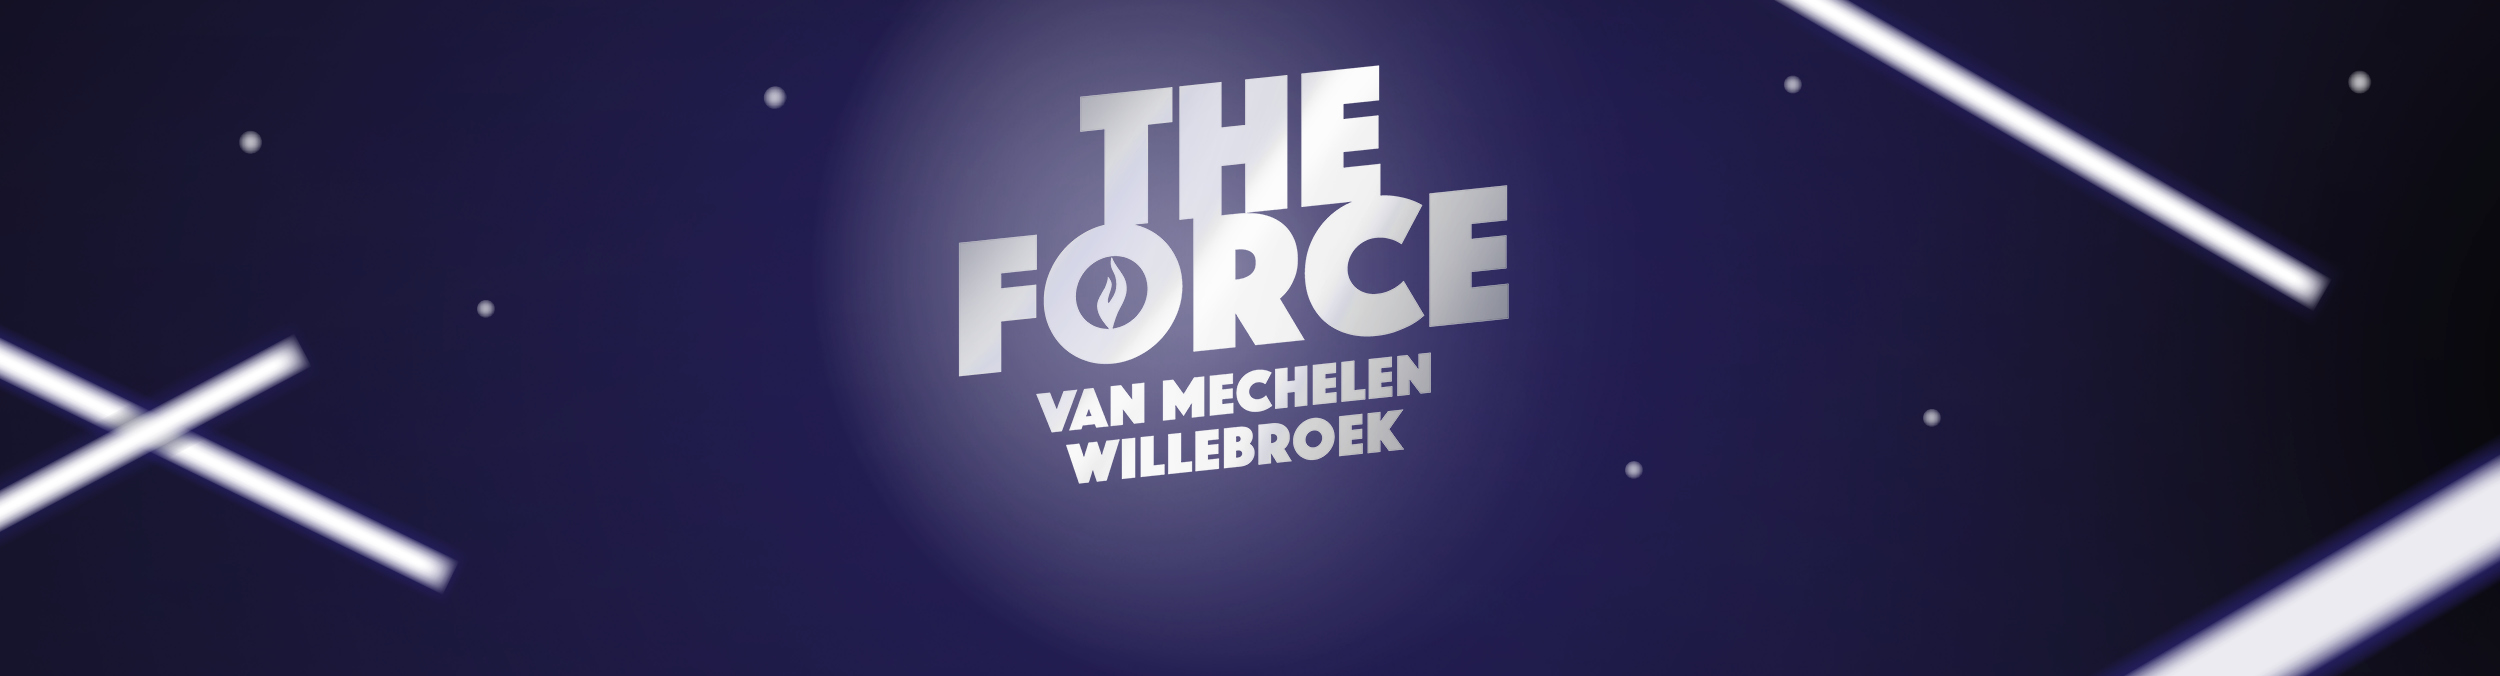 THE FORCE van Mechelen-Willebroek